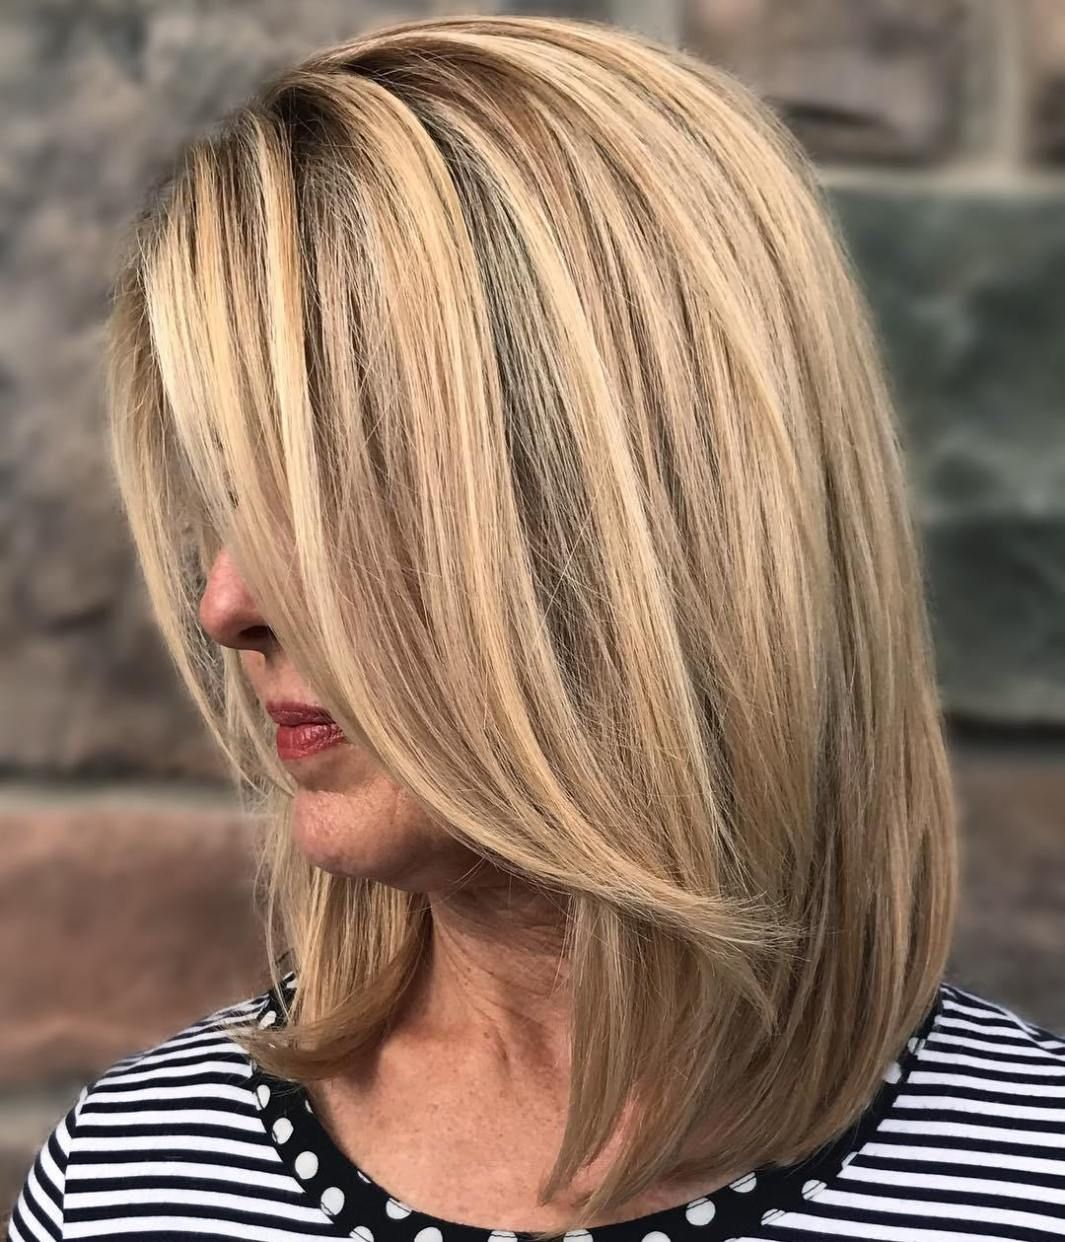 most prominent hairstyles for women over long blonde bobs